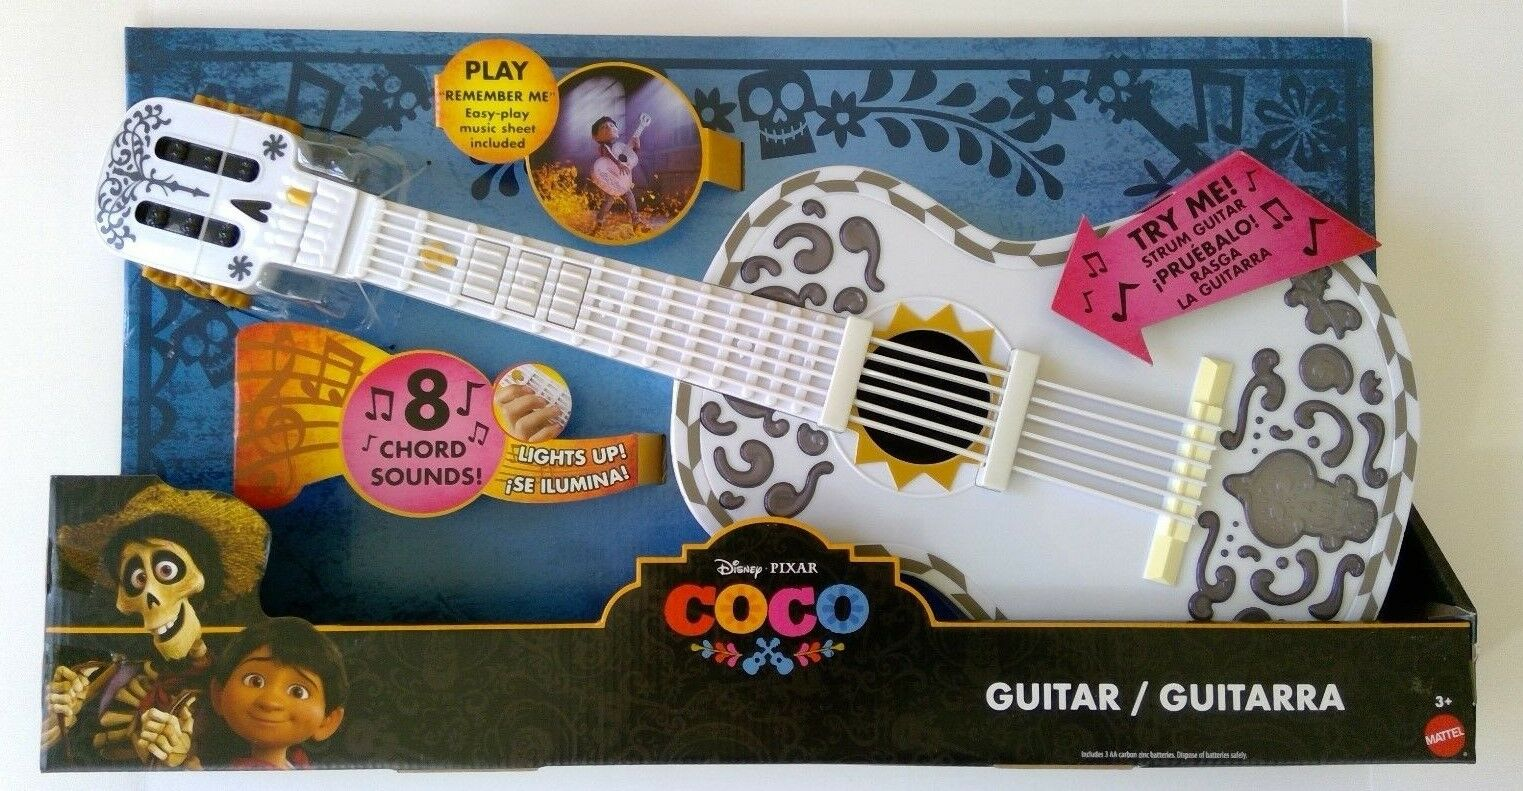 Disney Pixar Coco Toy Guitar White Lights Up 8 Chord Sounds Remember